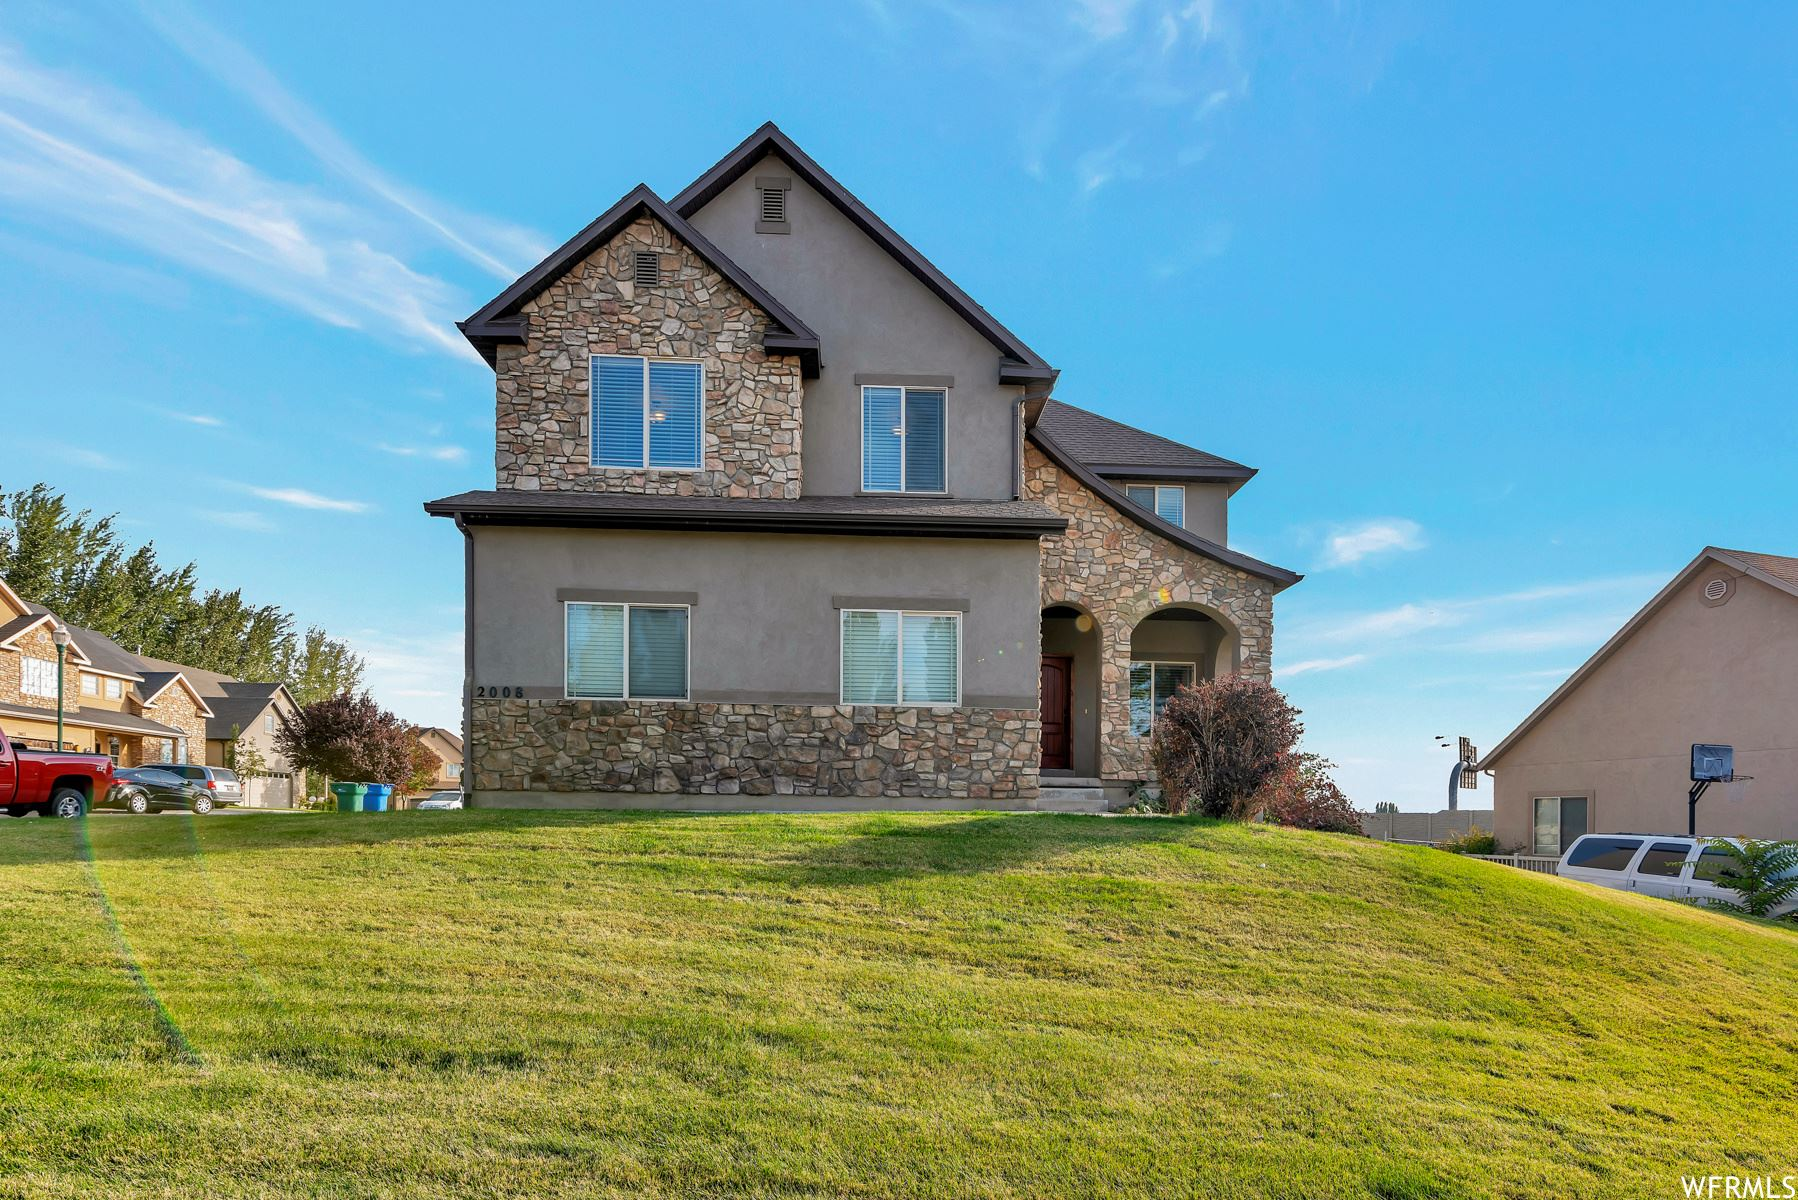 Photo of 335 W 2000 S, Orem, UT 84058 (MLS # 1706653)